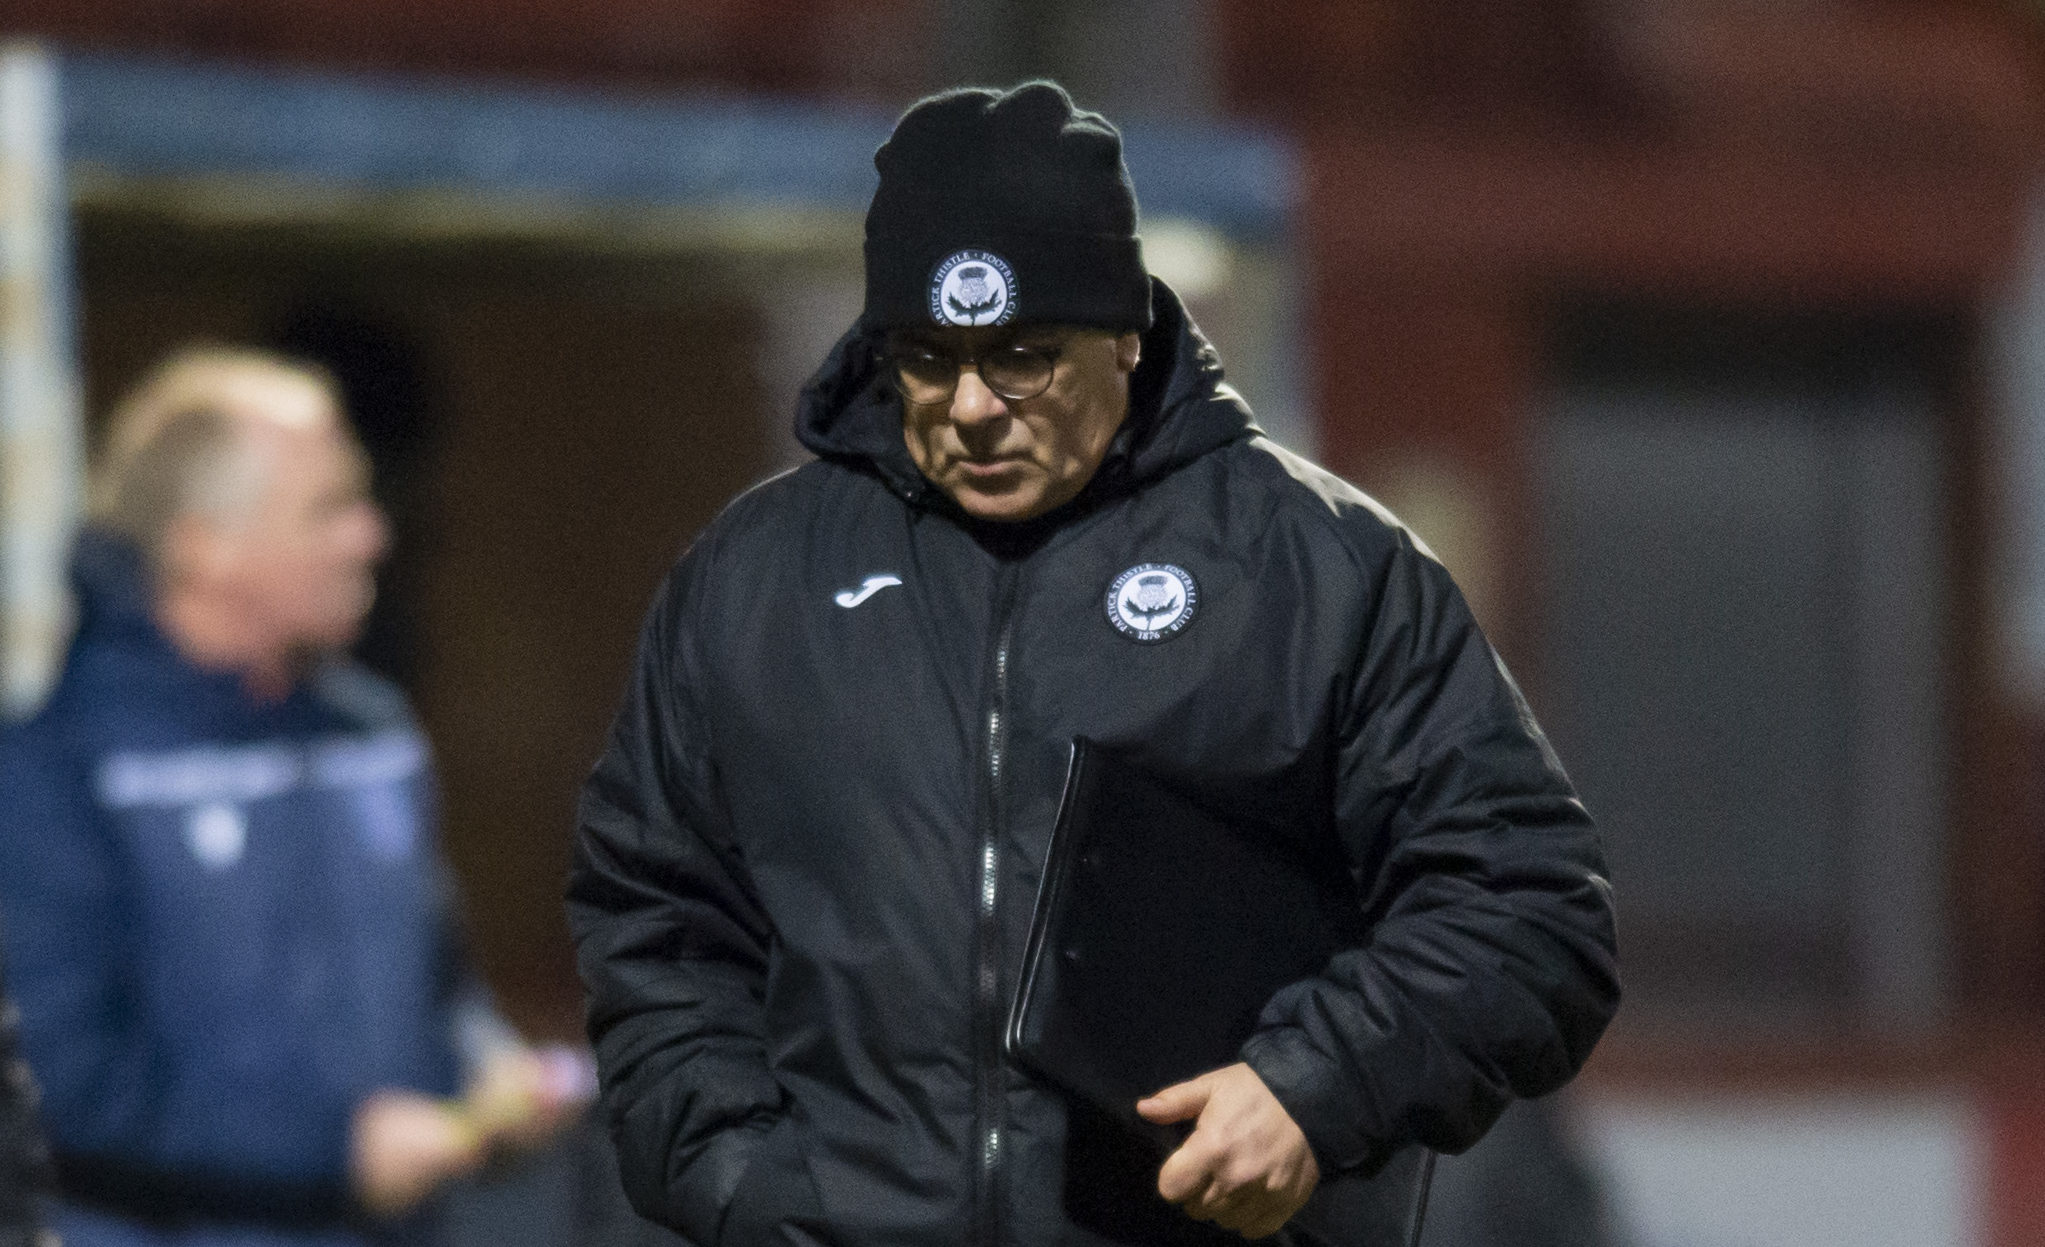 A dejected Ian McCall after losing on Saturday.